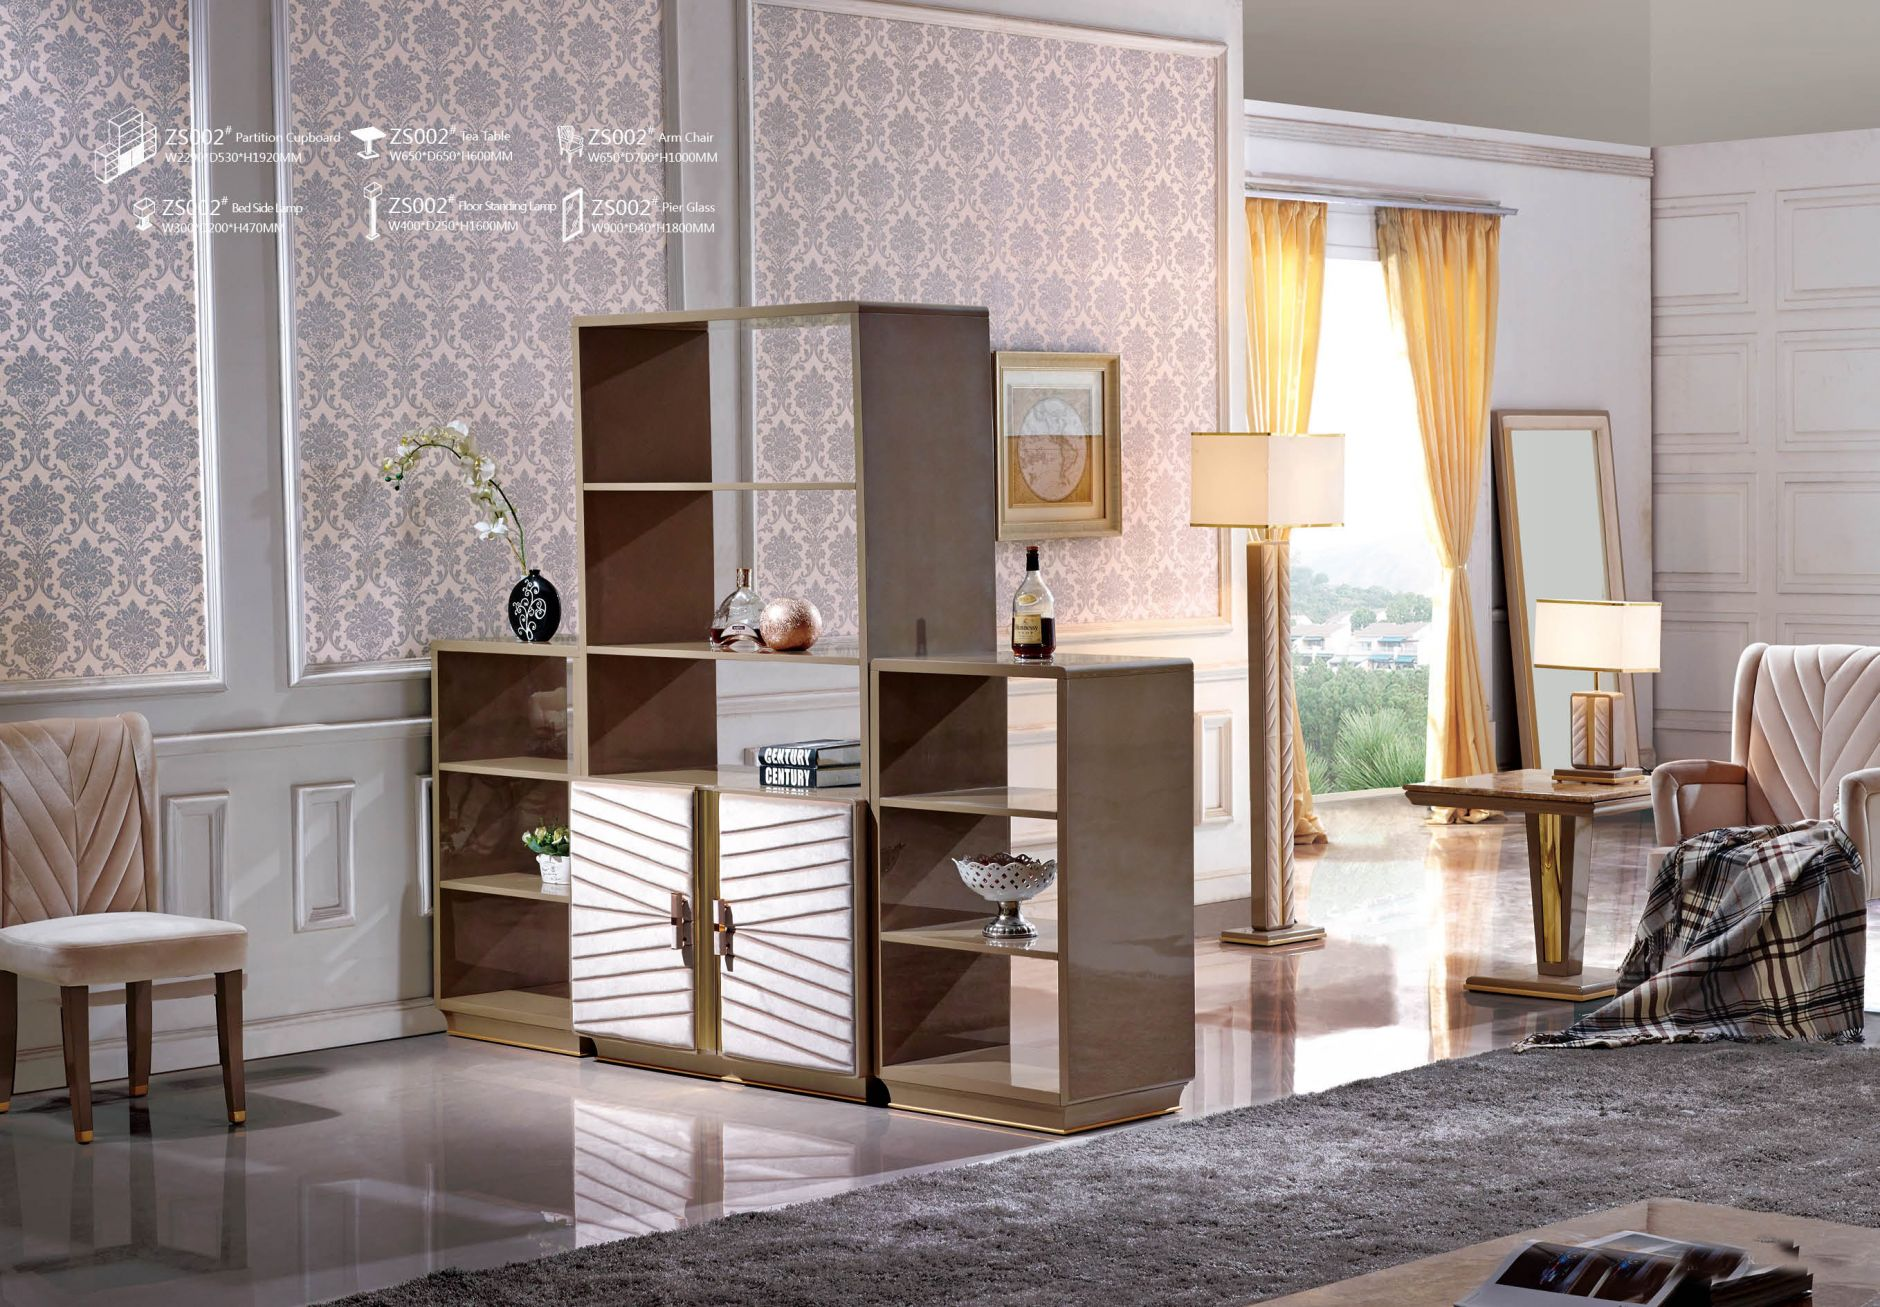 mezzanin designer m bel serie zs002die m bel aus italien. Black Bedroom Furniture Sets. Home Design Ideas